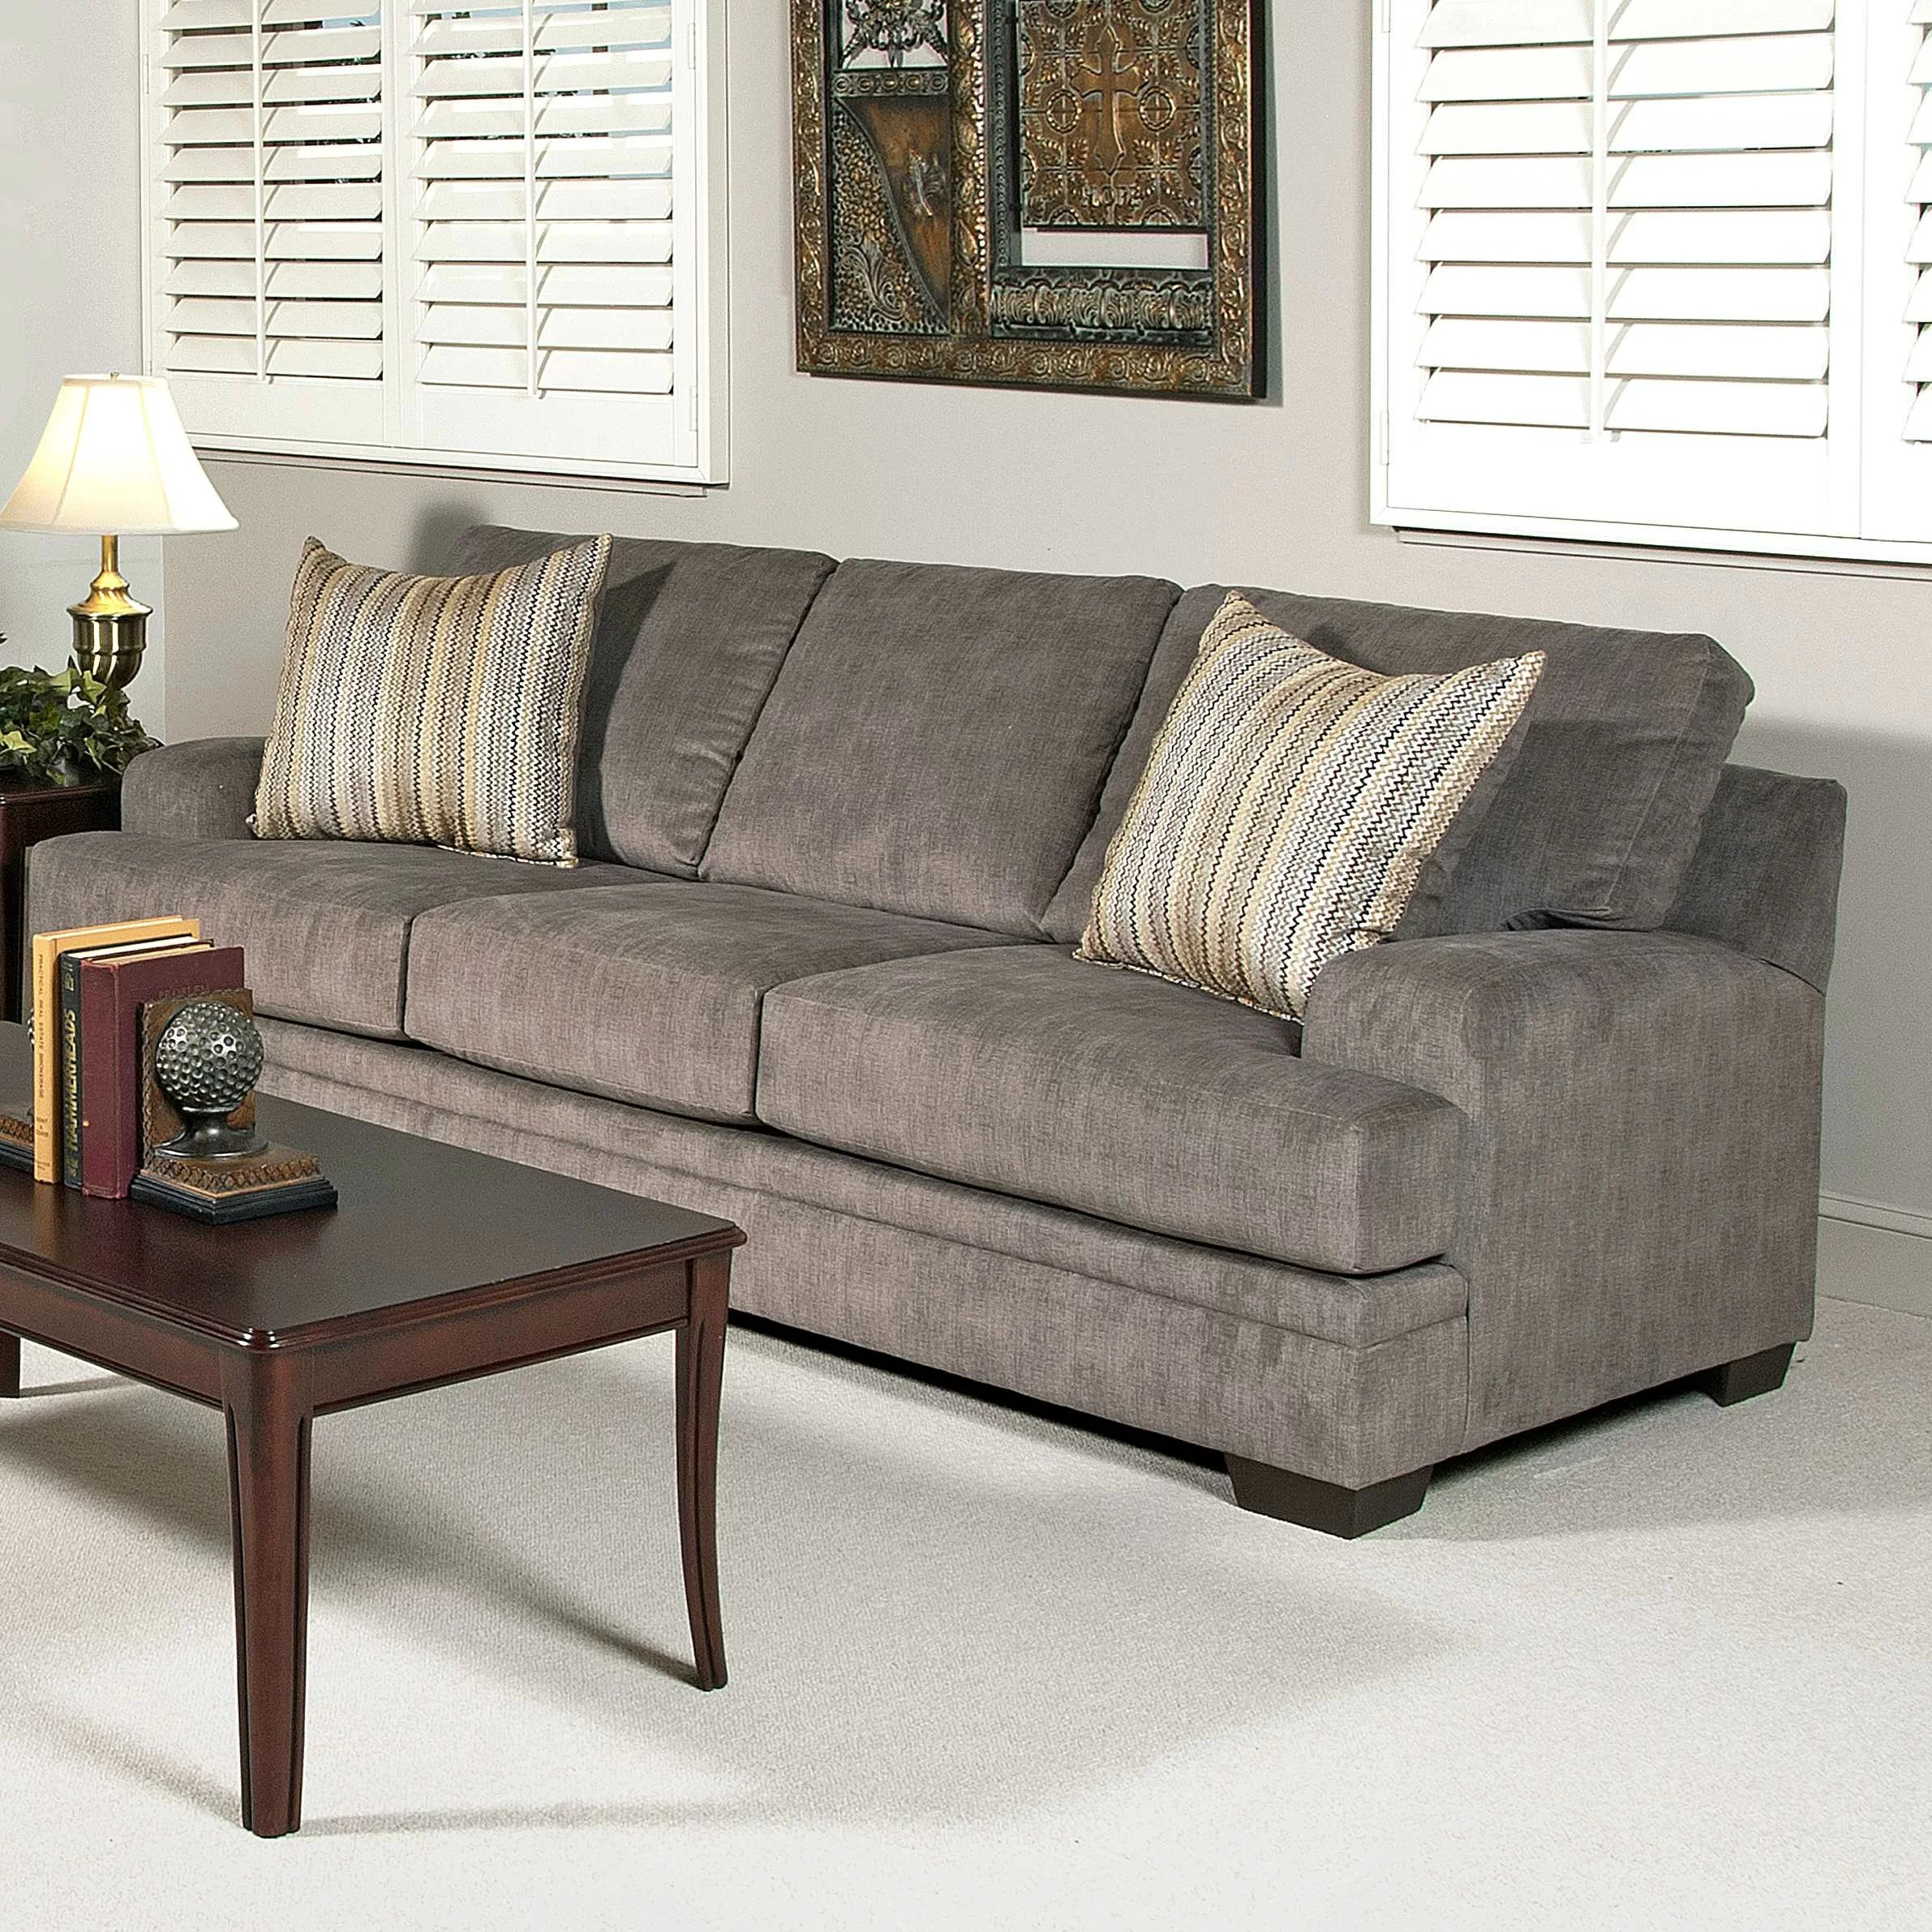 Serta Upholstery Vermont Sofa  Reviews  Wayfair